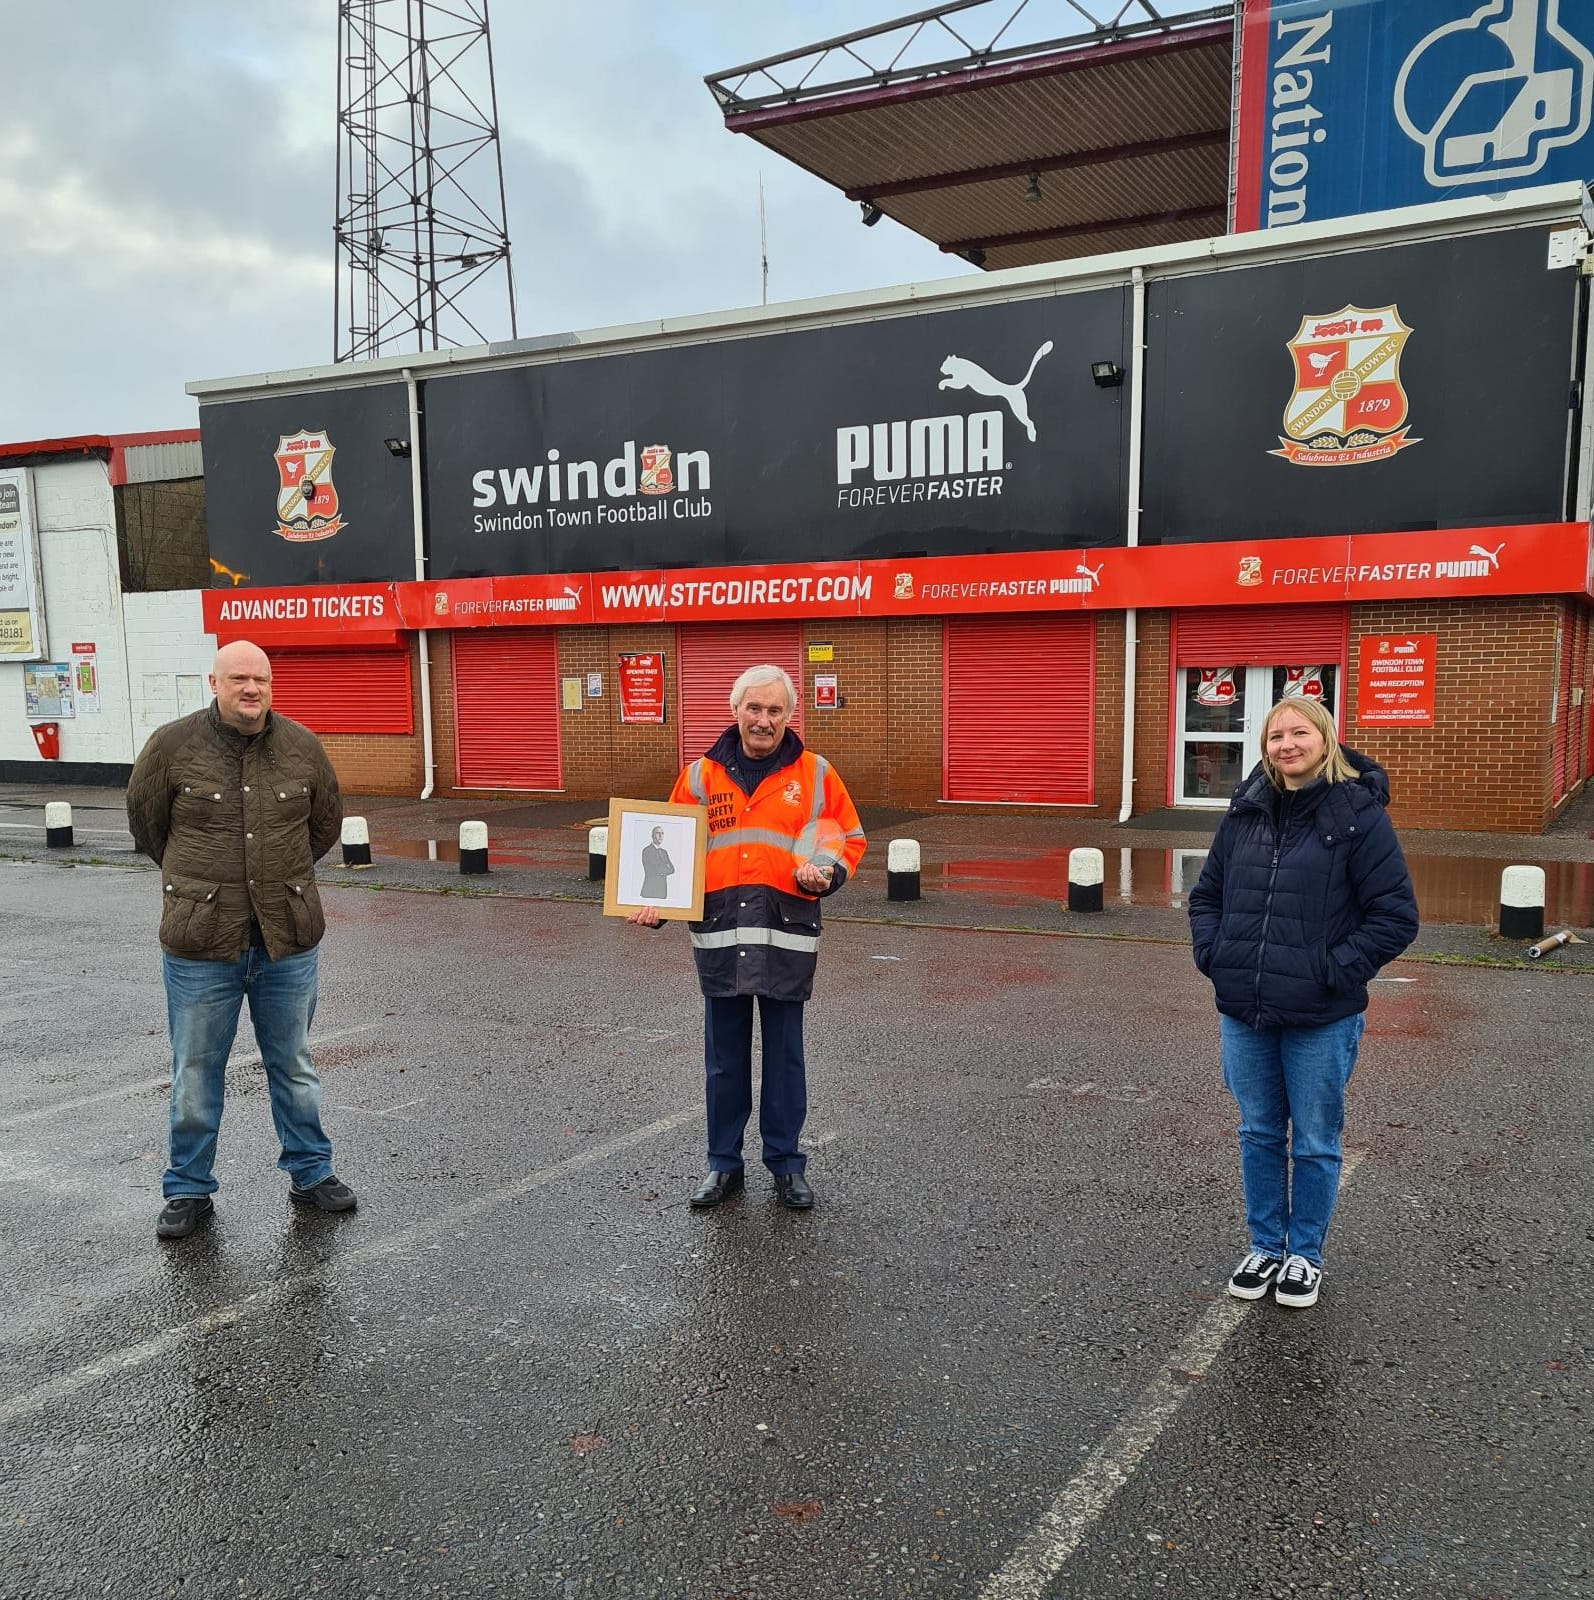 TrustSTFC / Official Supporters Club Official Press Release – Douglas Coombs